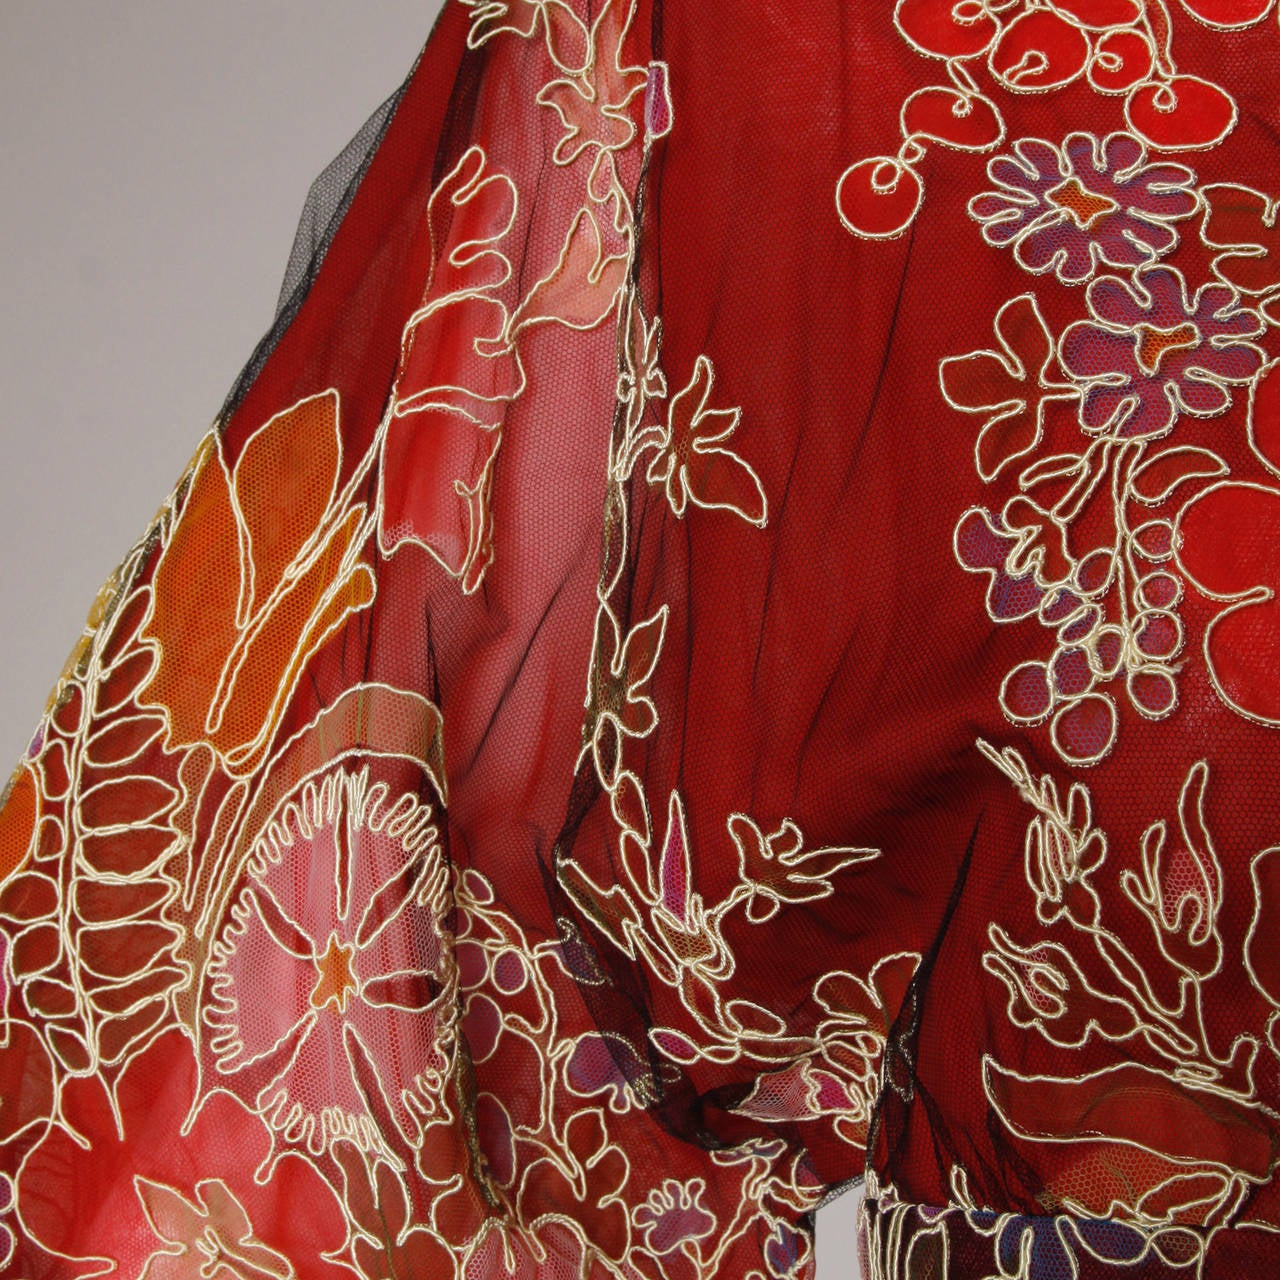 Donald Brooks Unworn Vintage 1970s Hand Painted Tulle Embroidered Dress For Sale 4